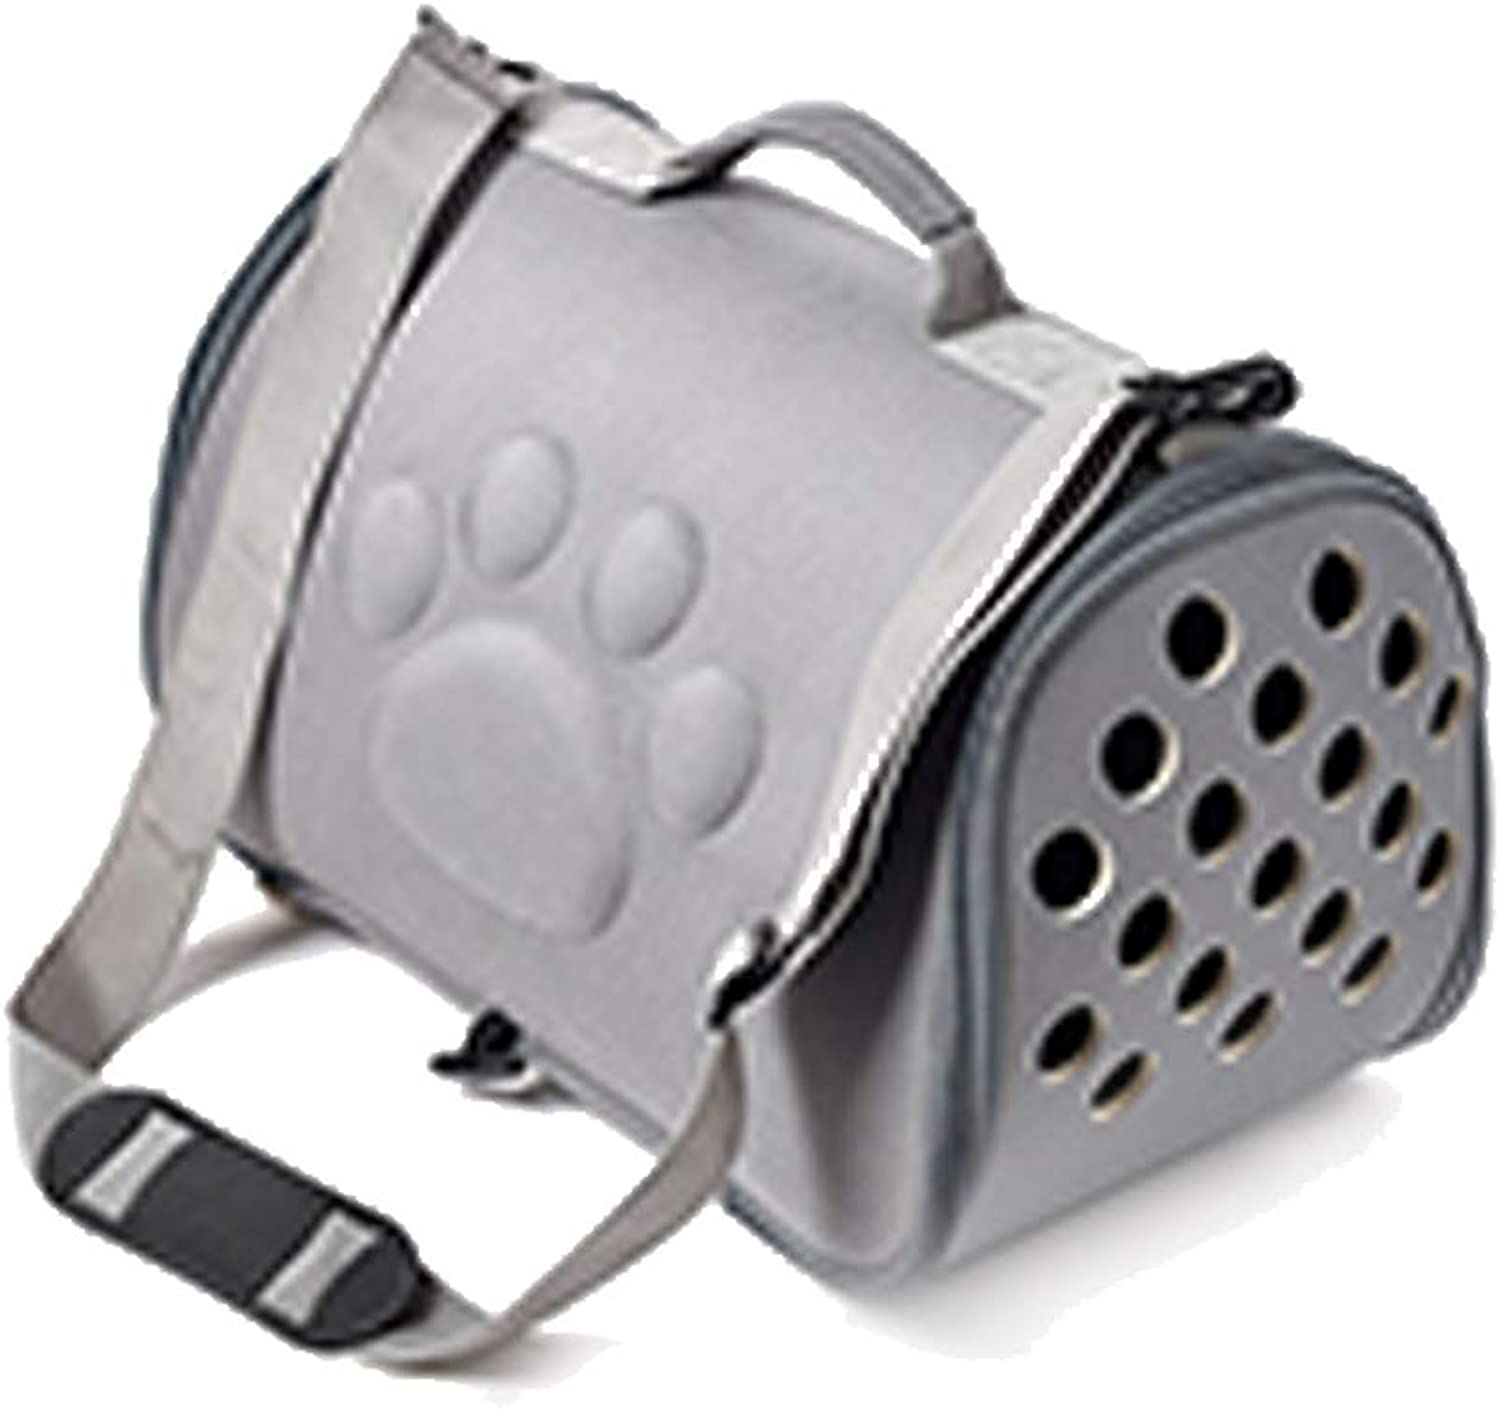 Pet Carrier Backpack,Foldable and Washable Travel Outing Pet Bag,Multiple Air Vents Waterproof Lightweight Pet Handbag for Cats Small Dogs & Petite Animals,Designed for Walking & Outdoor Use